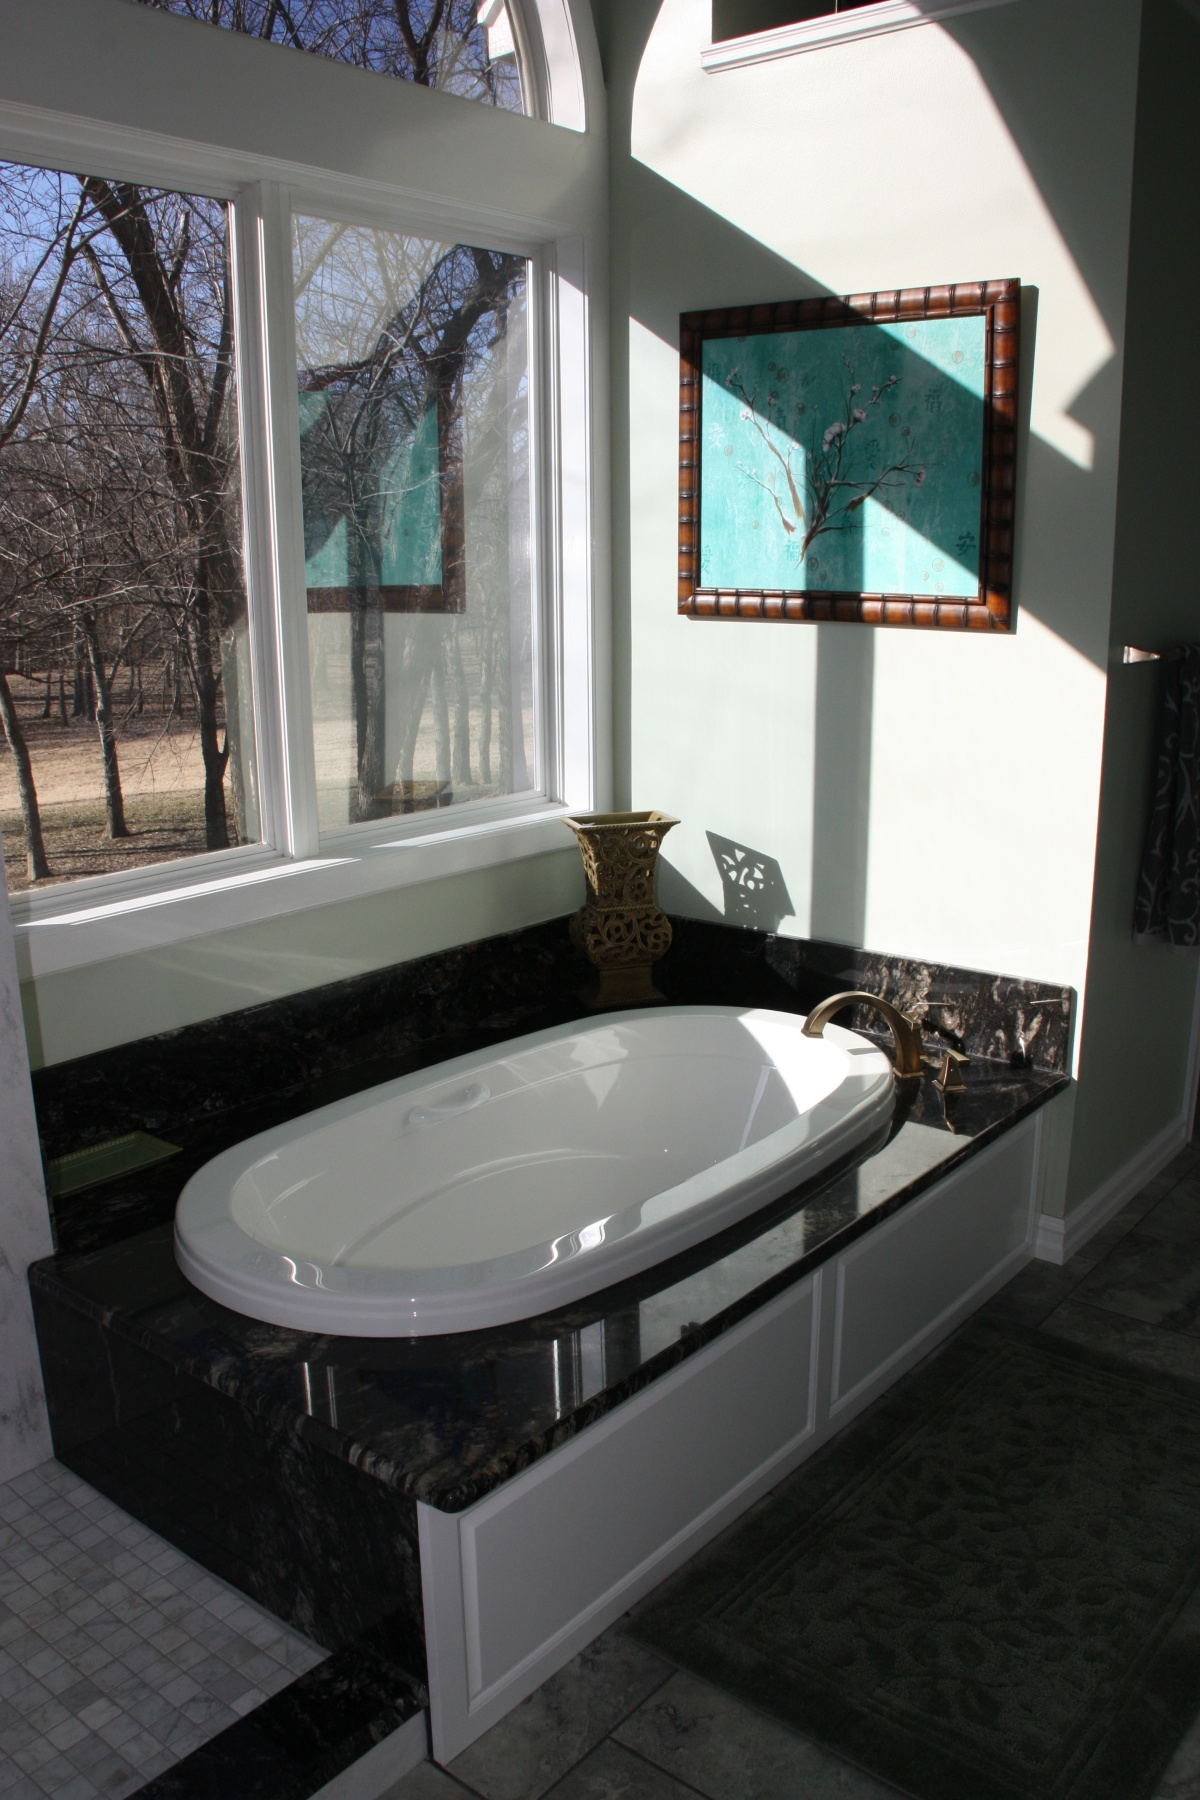 Top Reasons for Bathroom Renovations